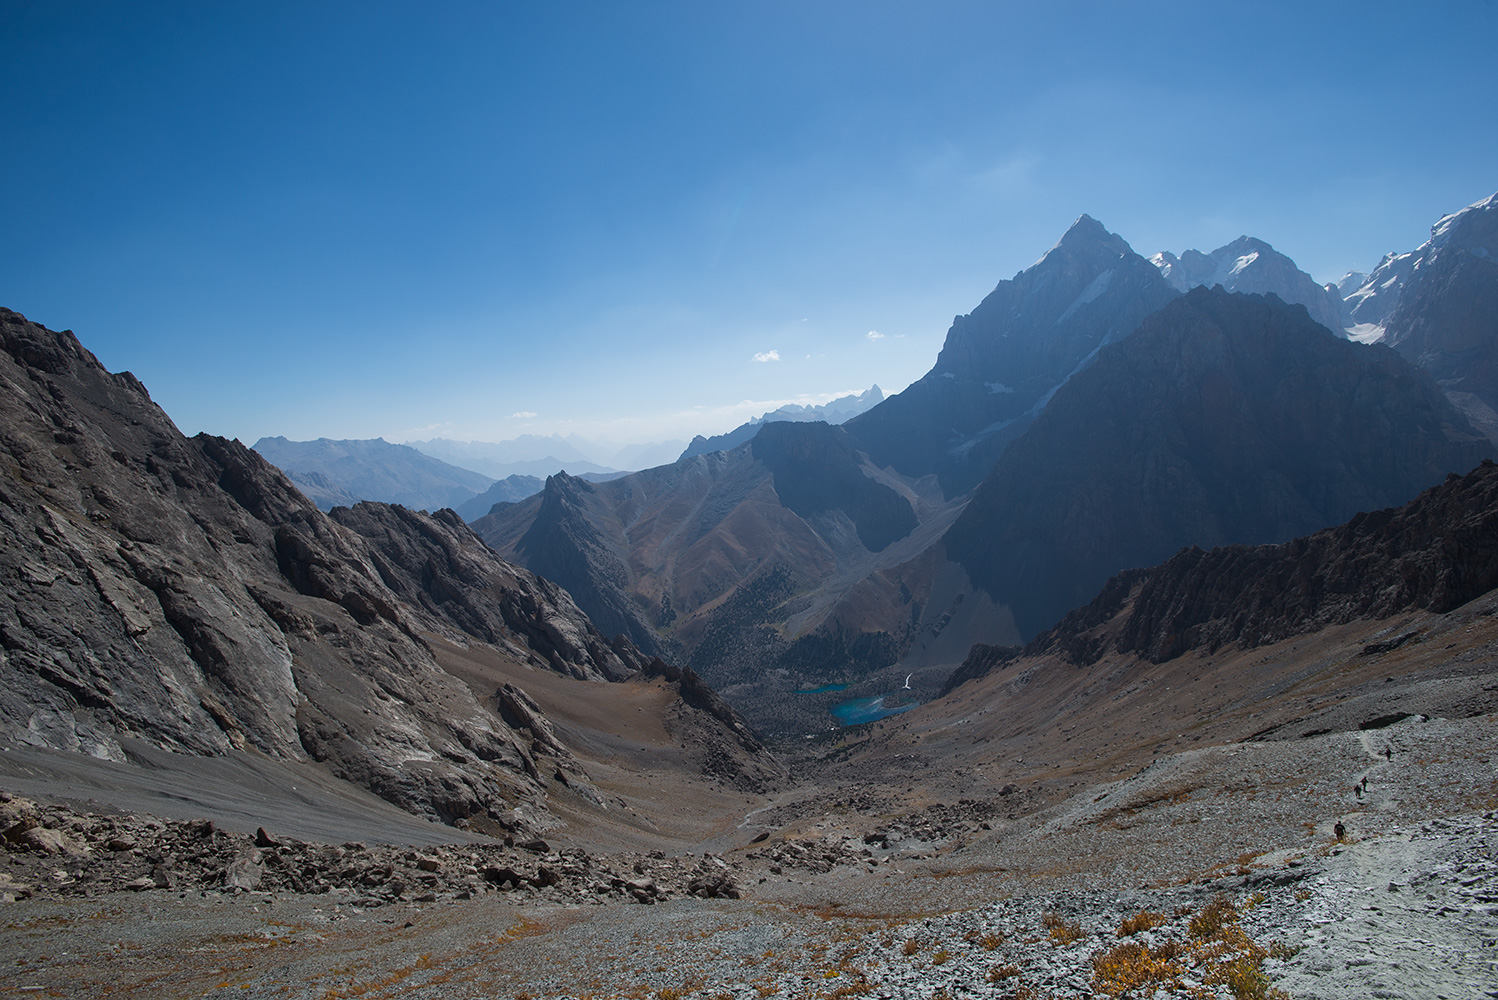 From the Alaudin Pass